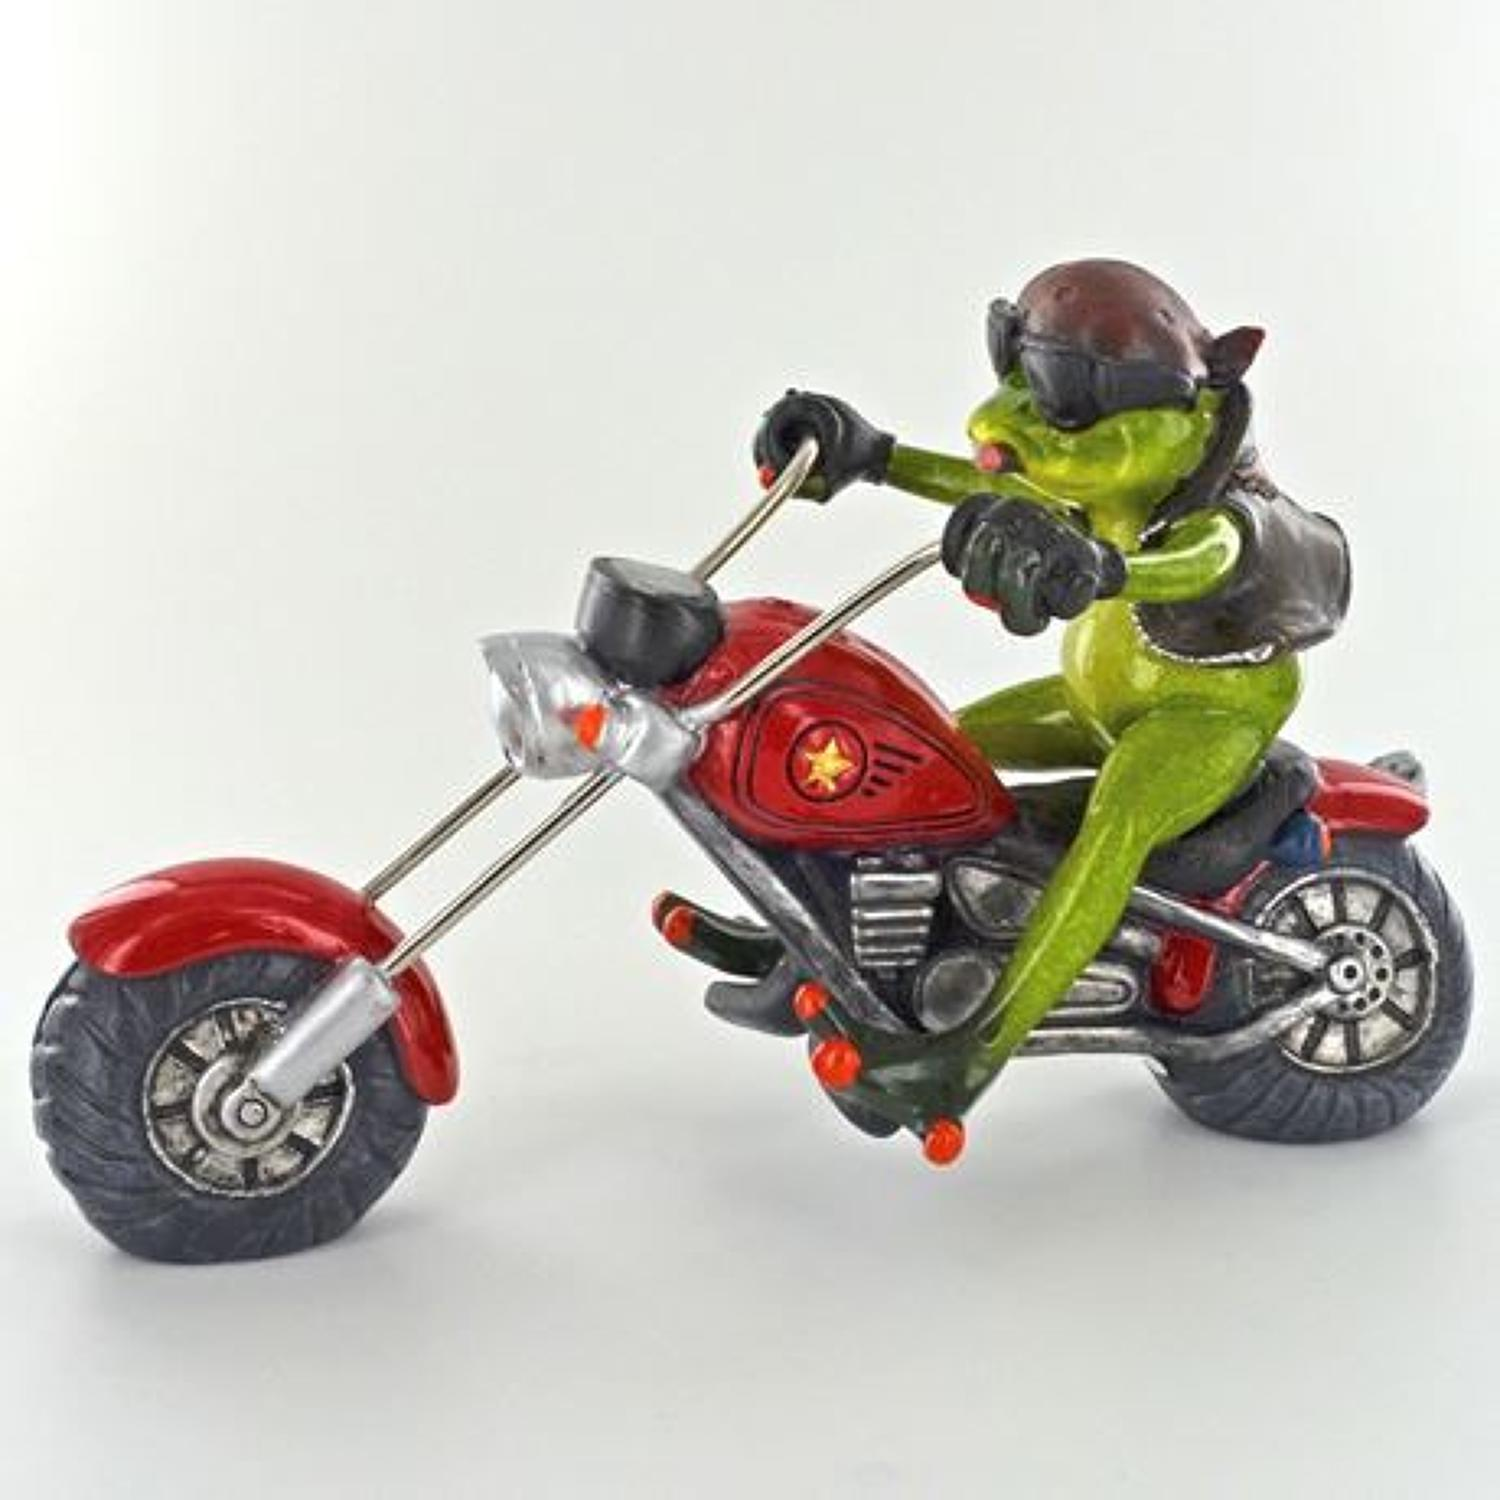 Comical Biker Frog figurine